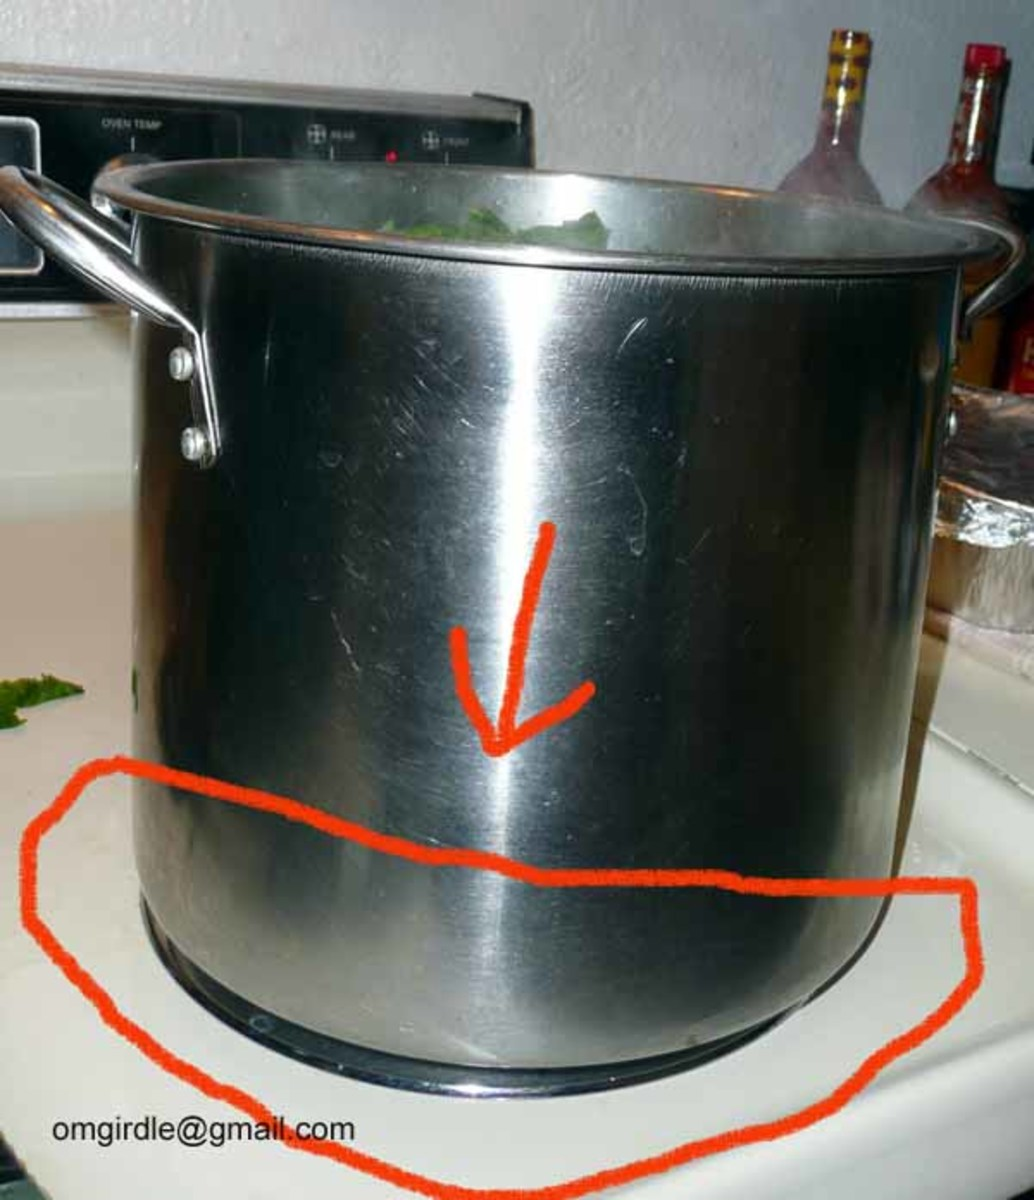 USE SAME BURNER SIZE AS POT IF POSSIBLE